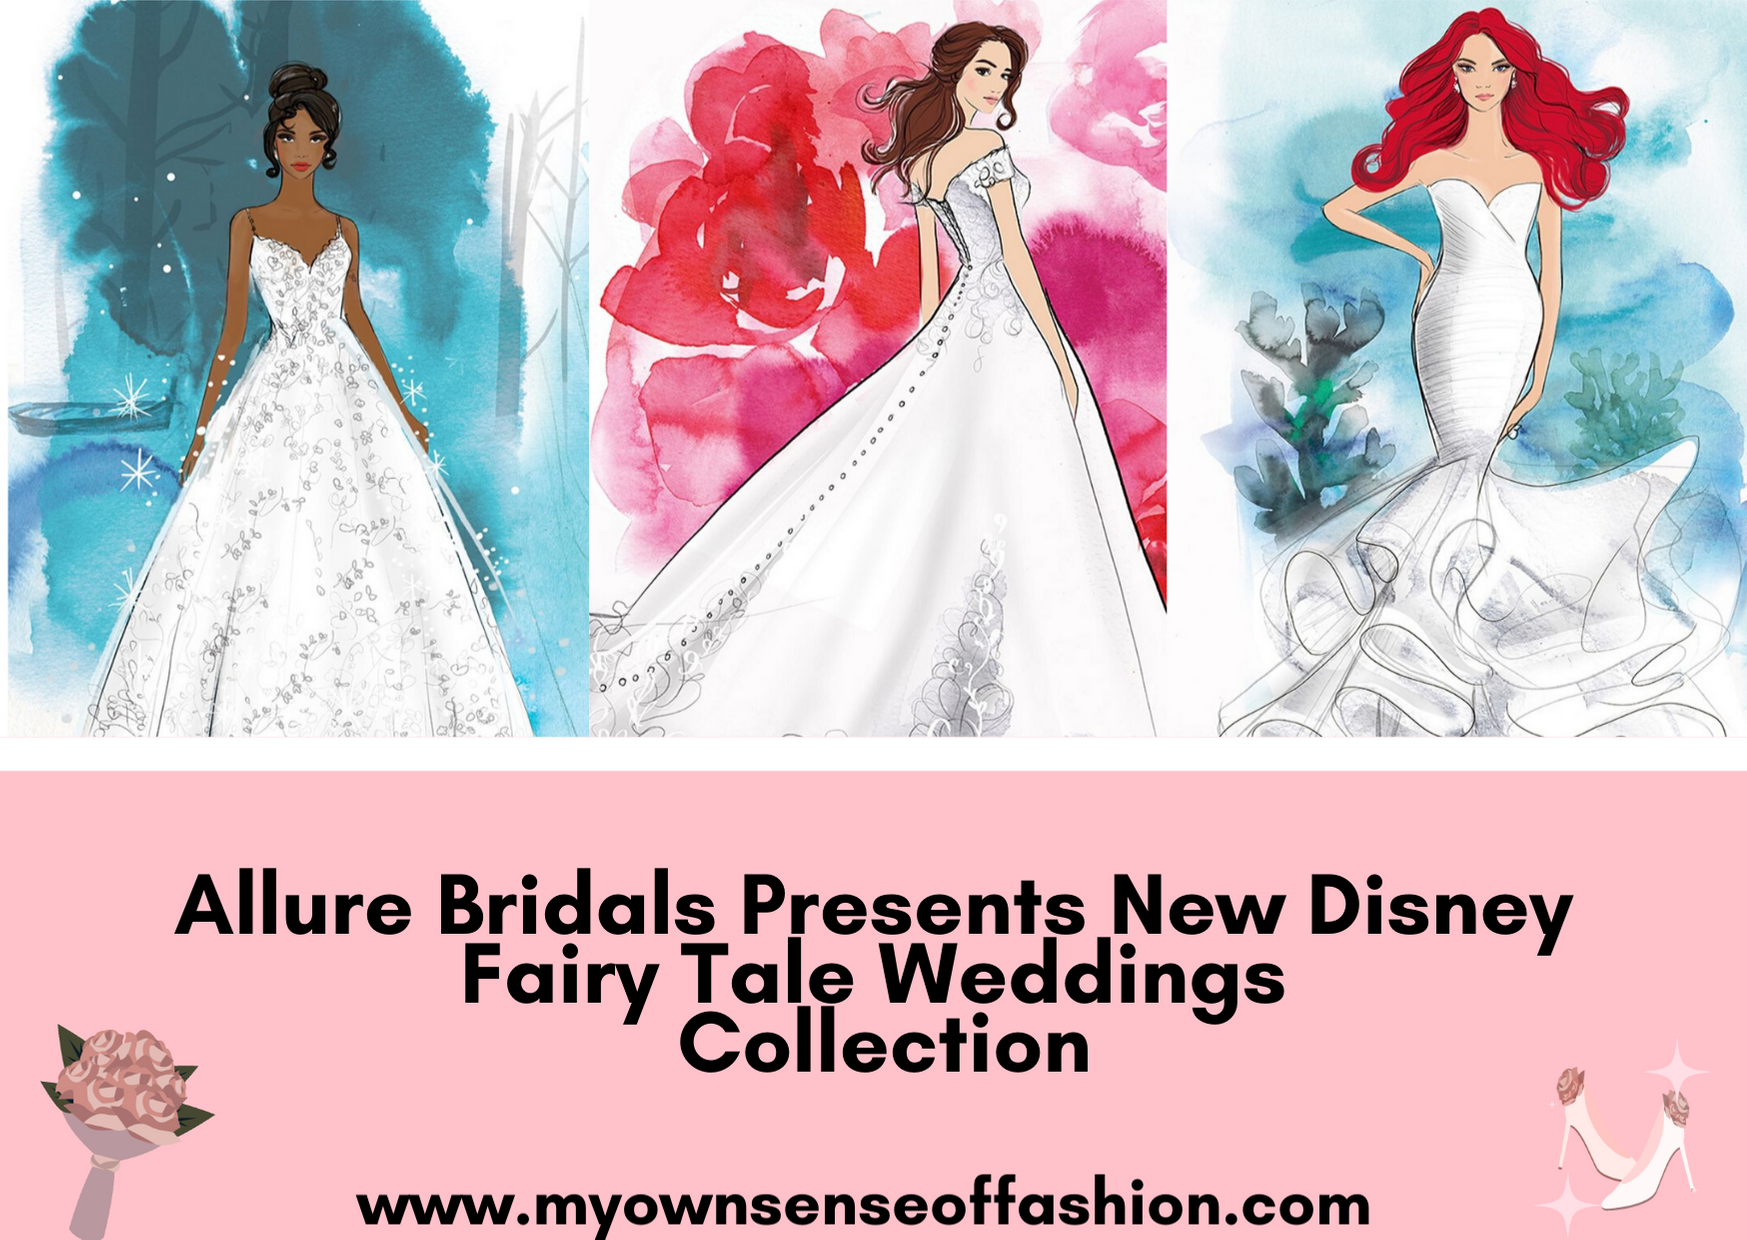 Allure Bridals Presents New Disney Fairy Tale Weddings Collection